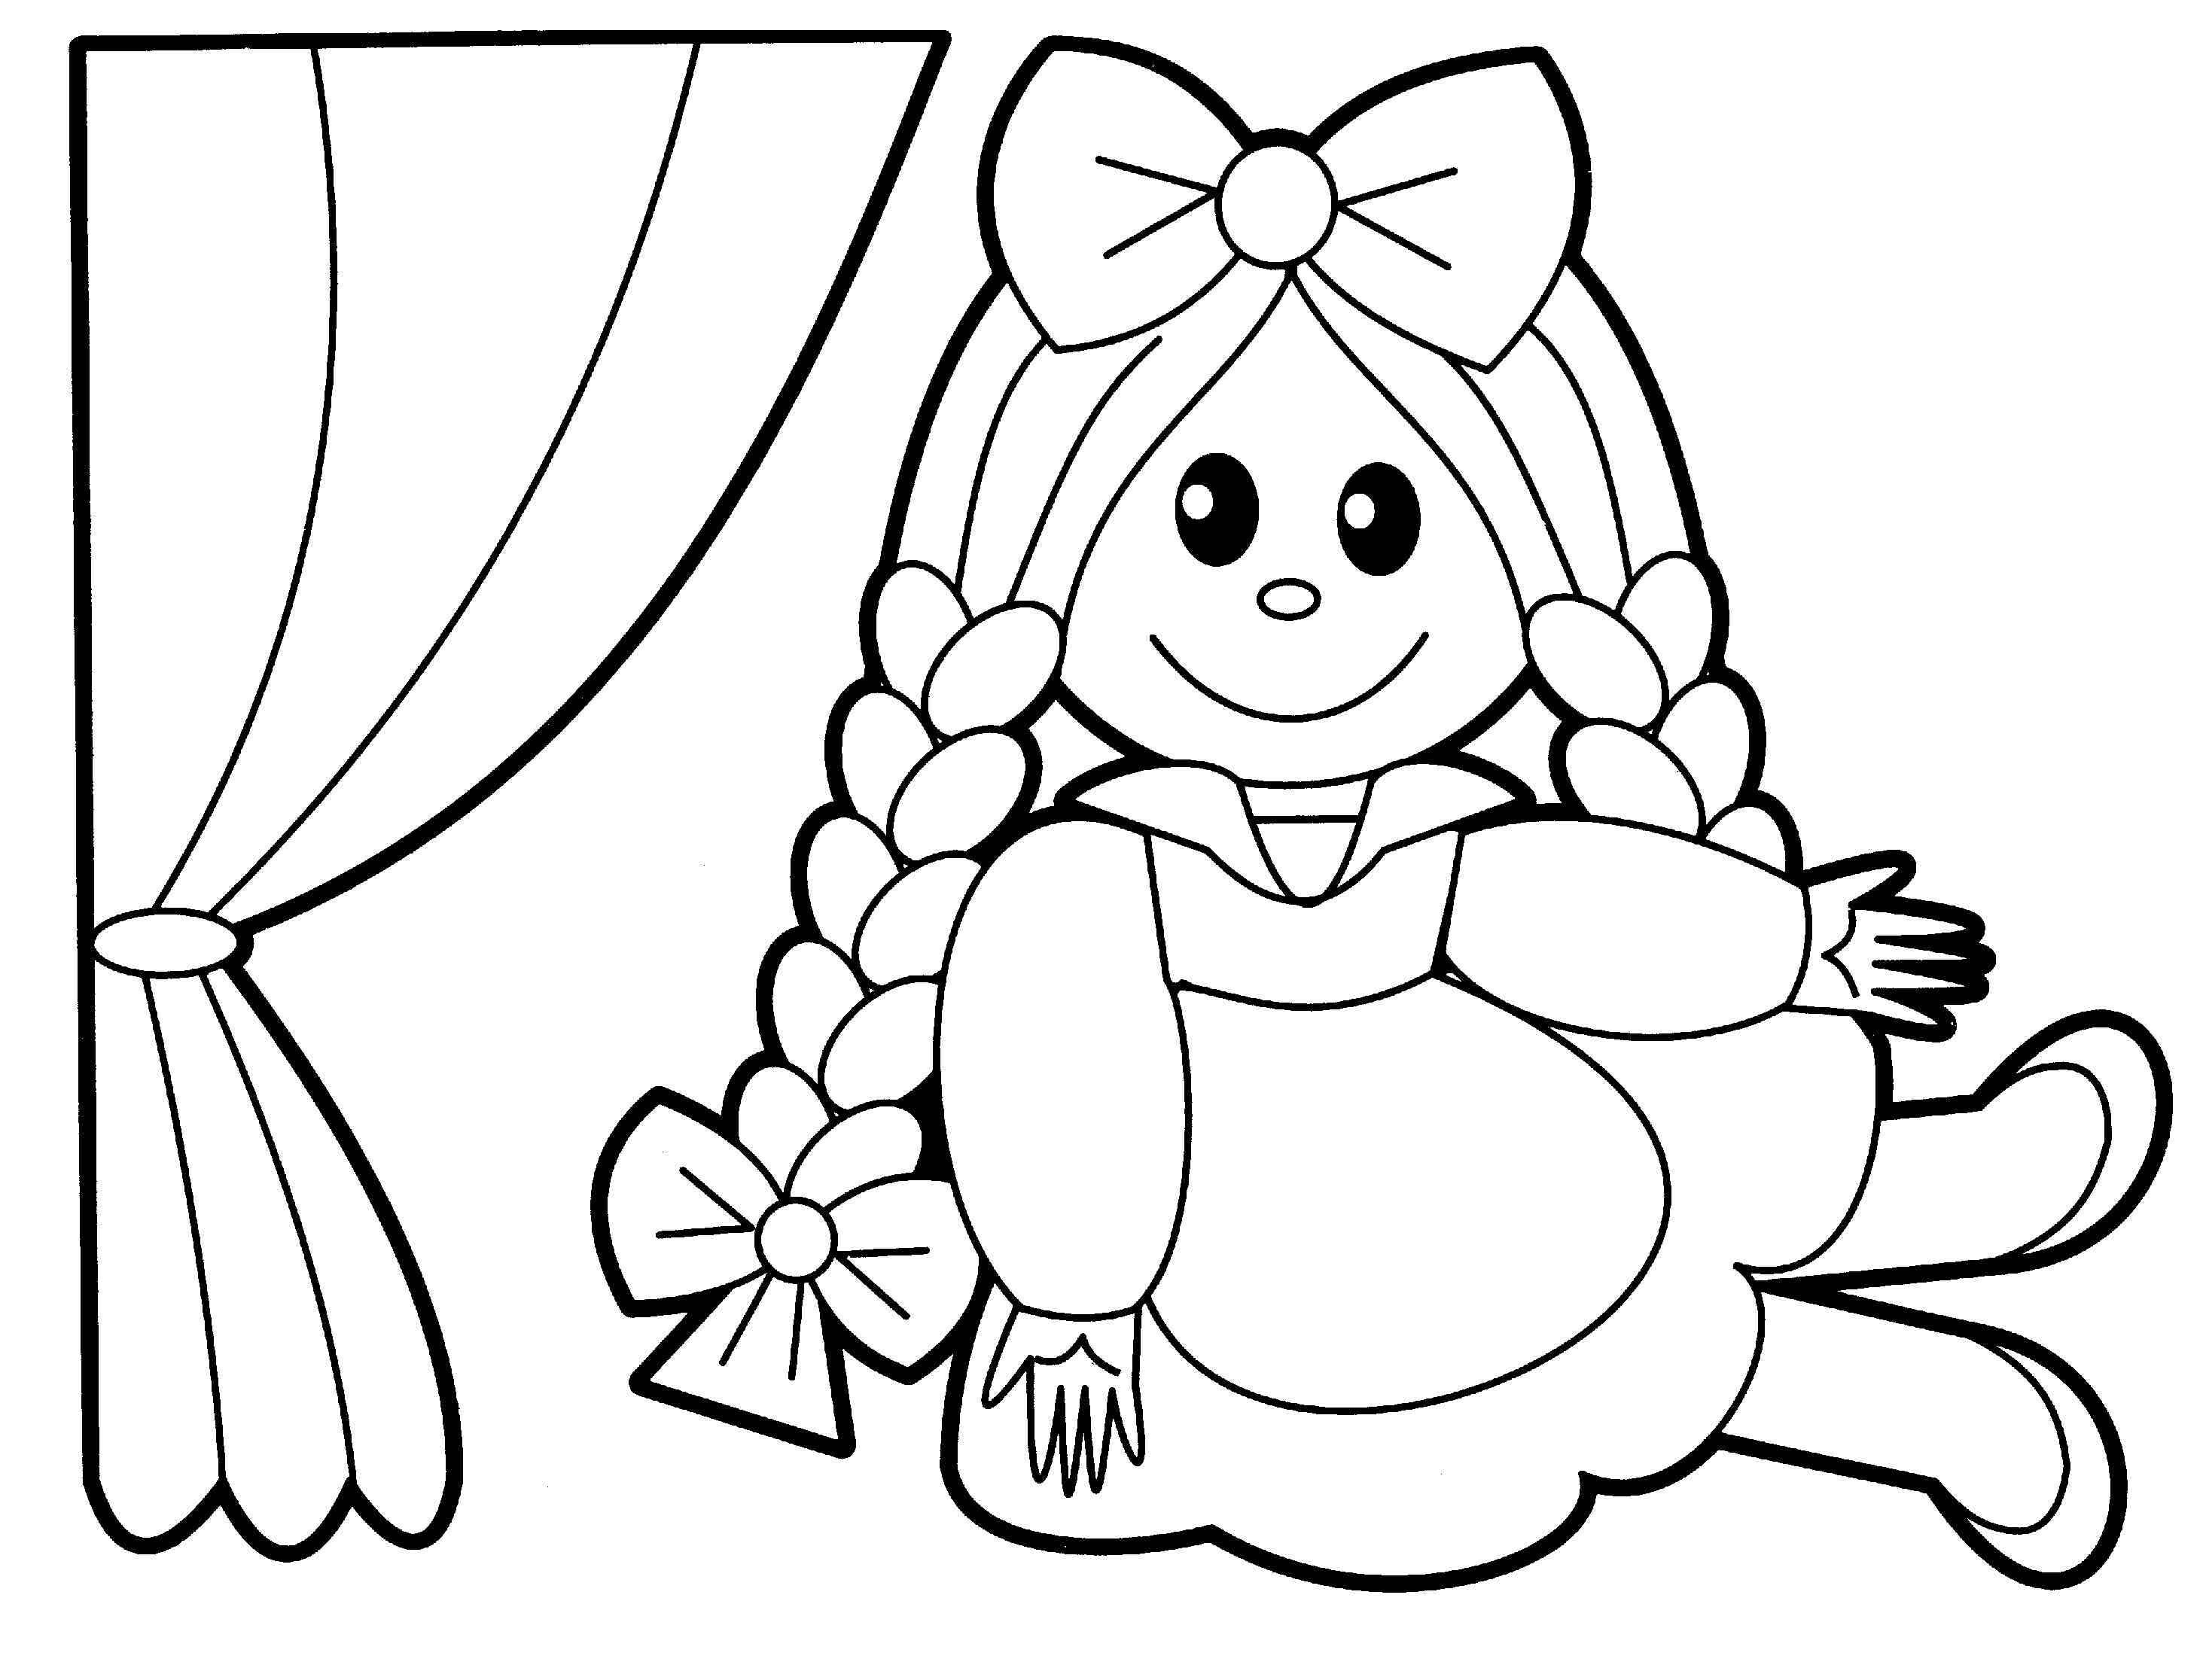 coloring worksheets for toddlers kids page baseball coloring pages download free worksheets for coloring toddlers